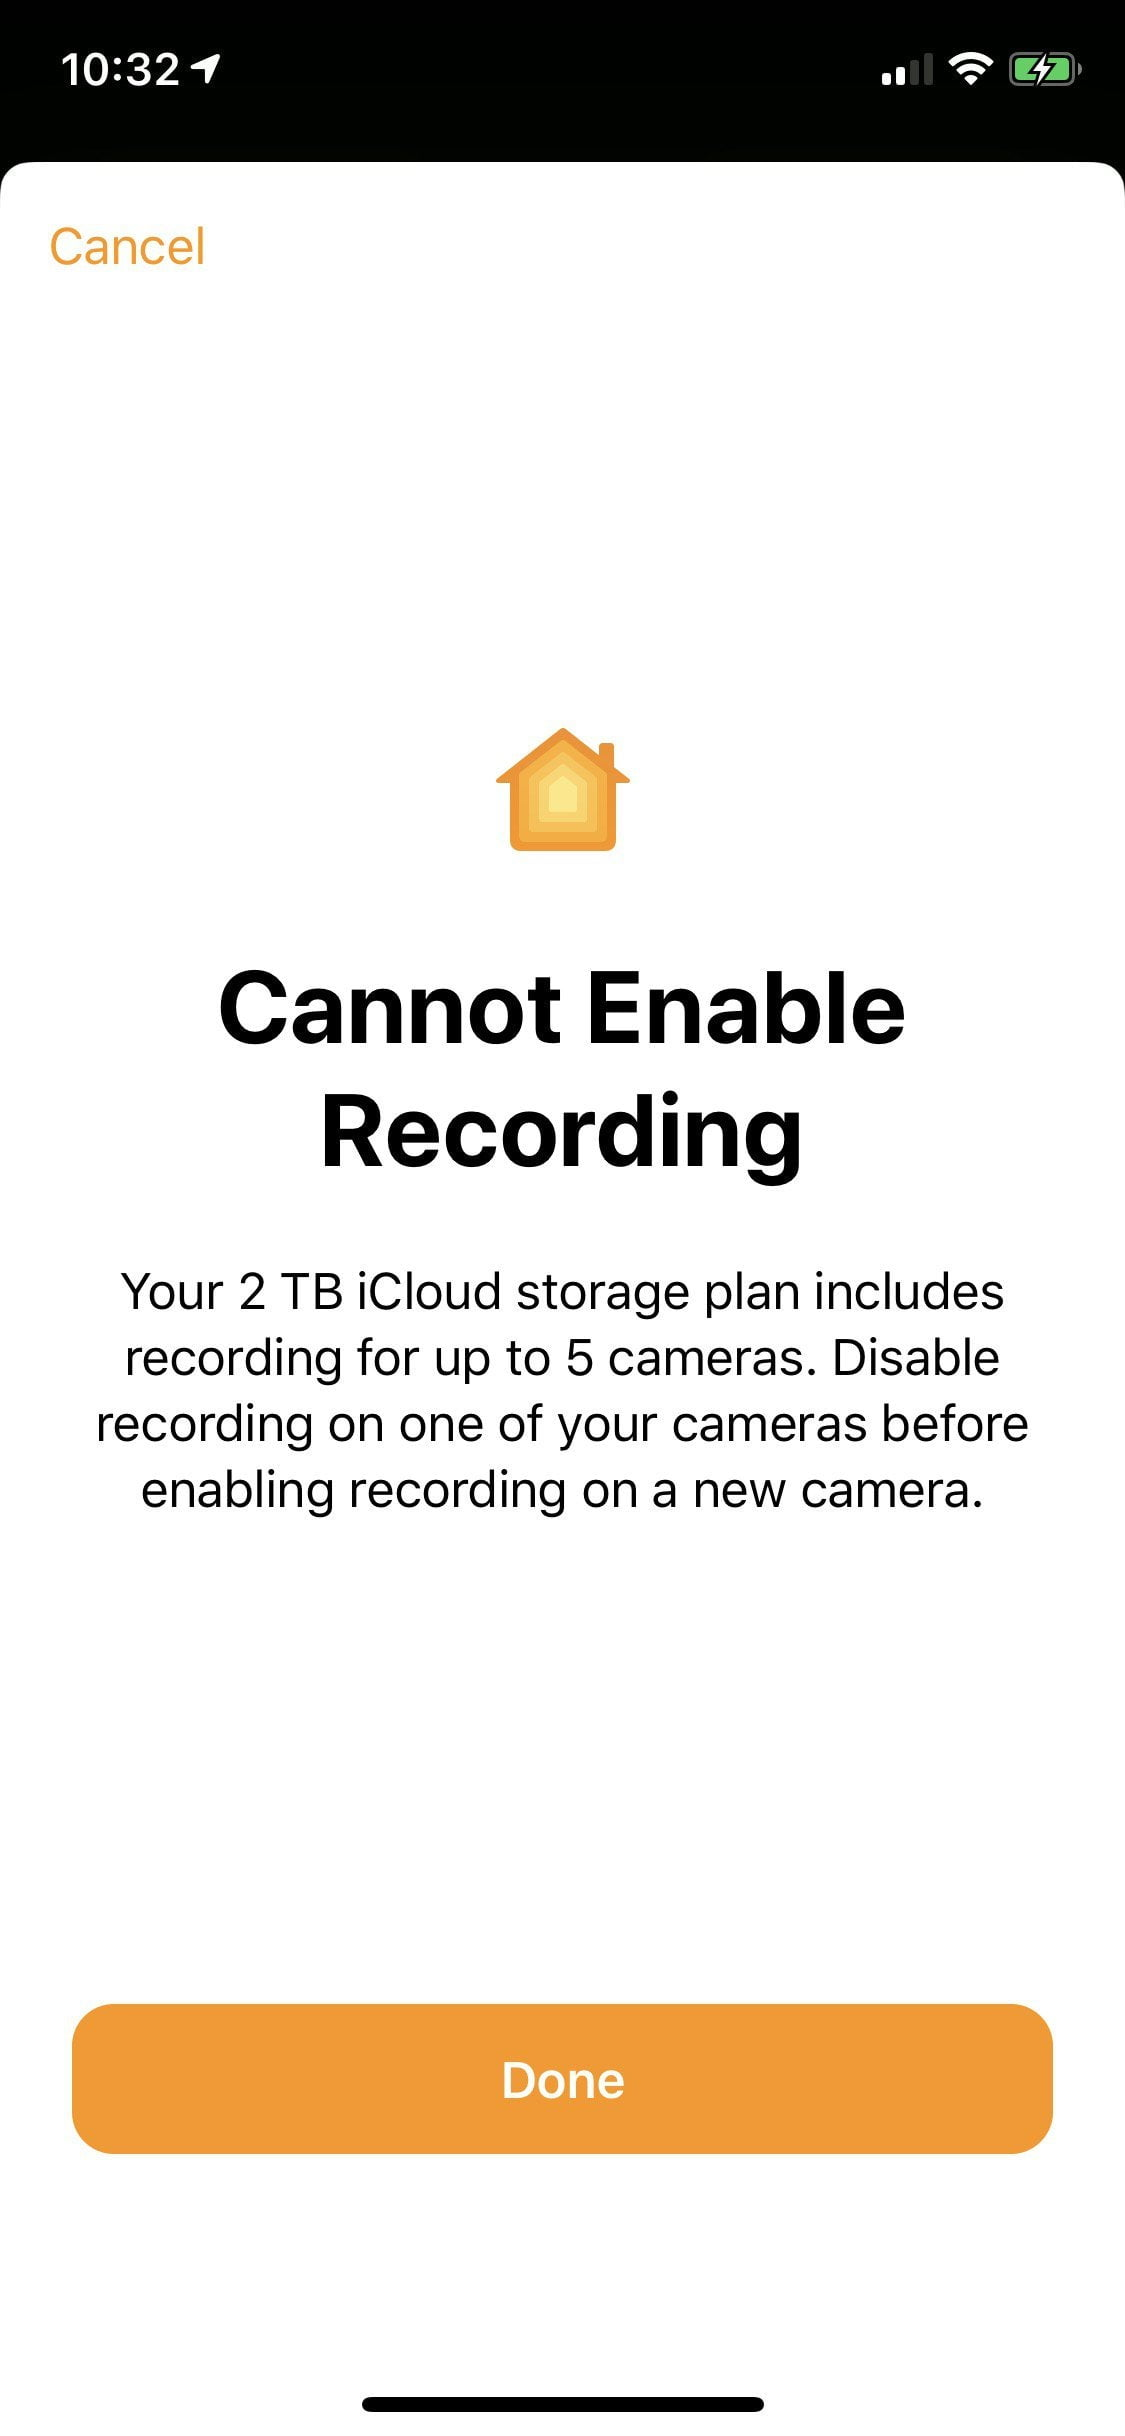 How to remove cameras from HKSV that are not included